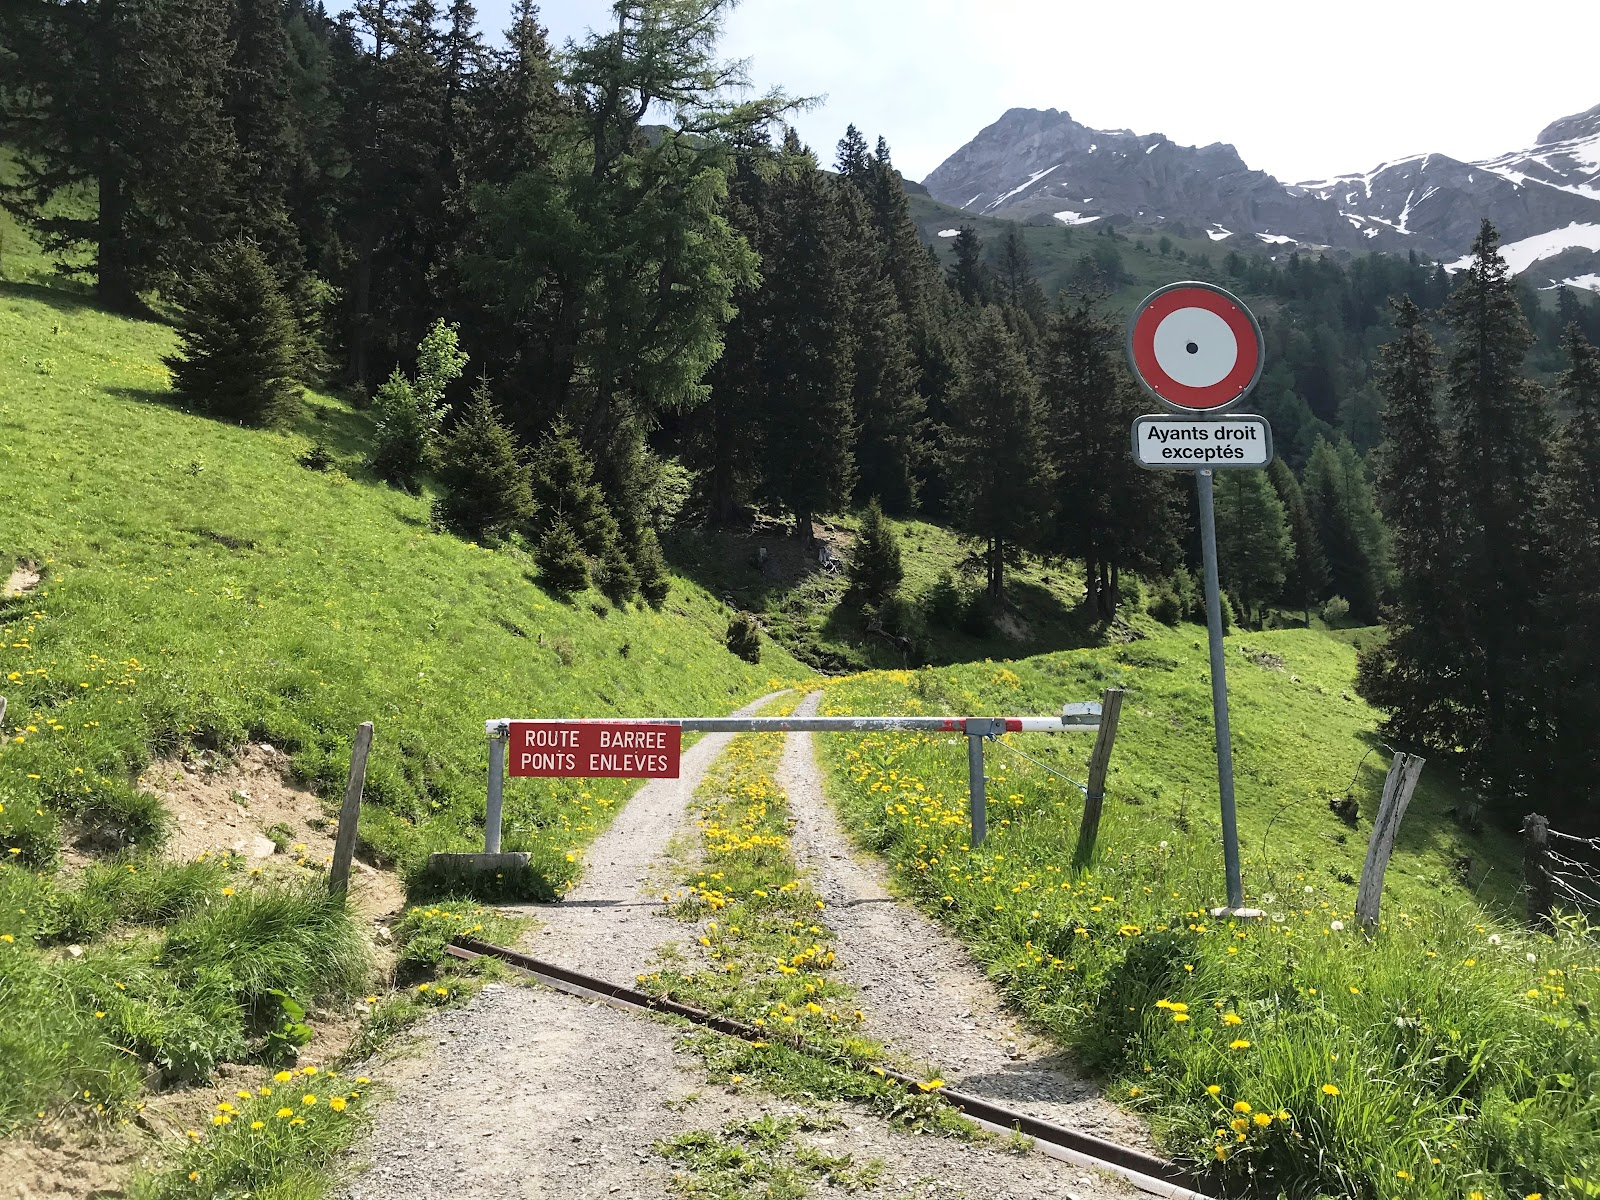 Bicycle climb of Rionda - gate on gravel road